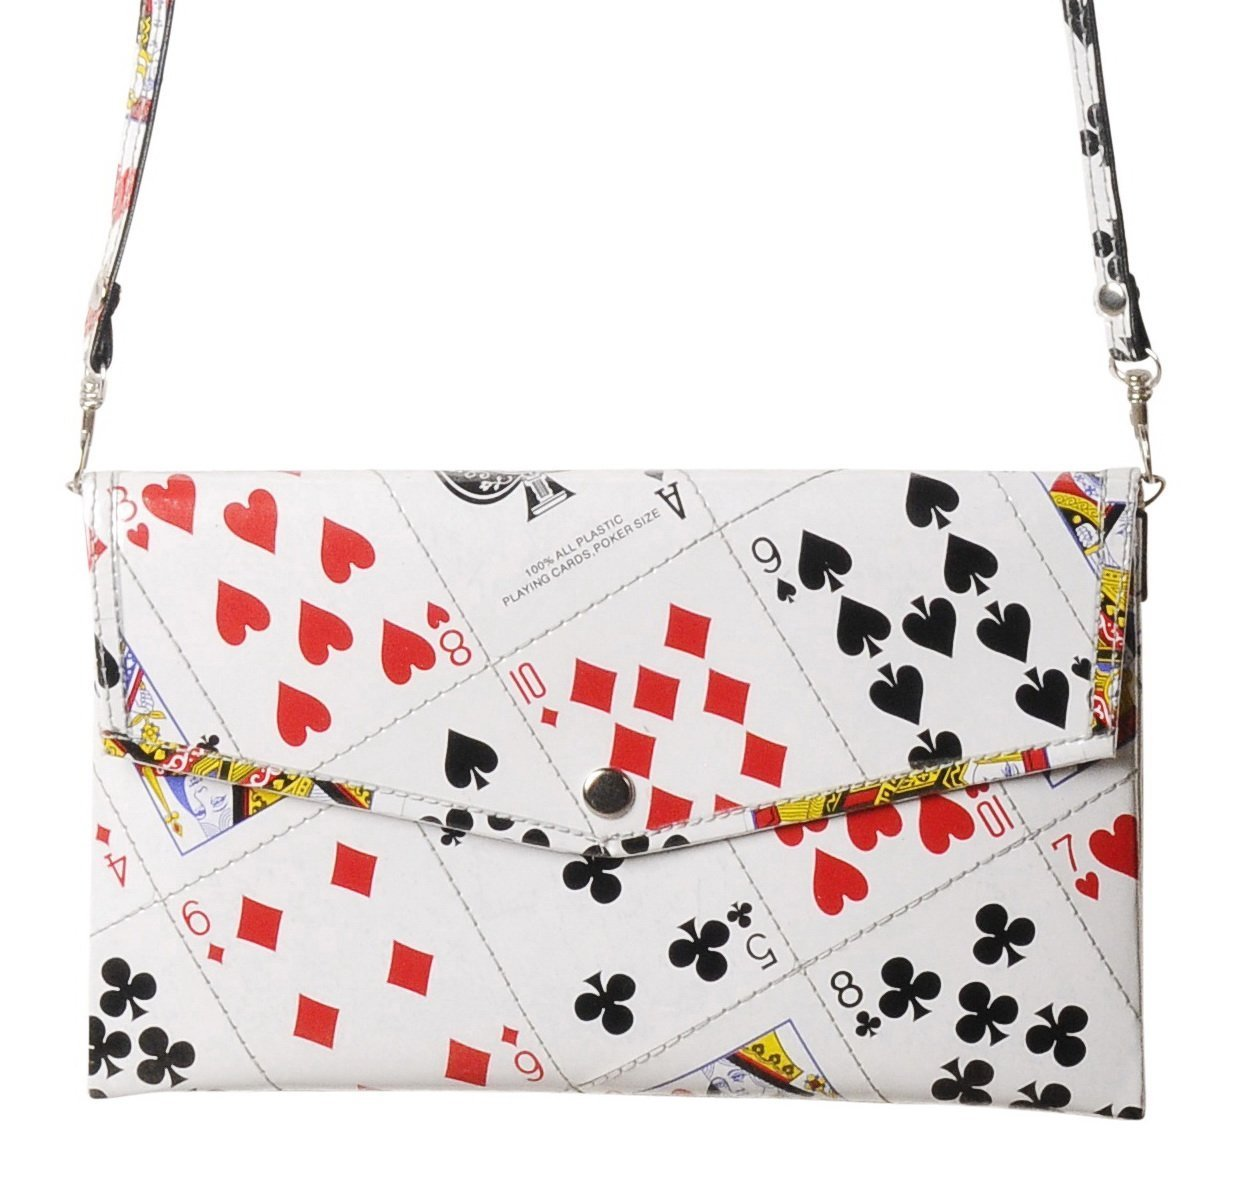 Clutch purse using play cards - FREE SHIPPING - upcycled eco friendly vegan recycled reclaimed salvaged handmade unique gift wallet evening wedding slim shoulder las vegas bag poker solitaire player by Upcycling by Milo